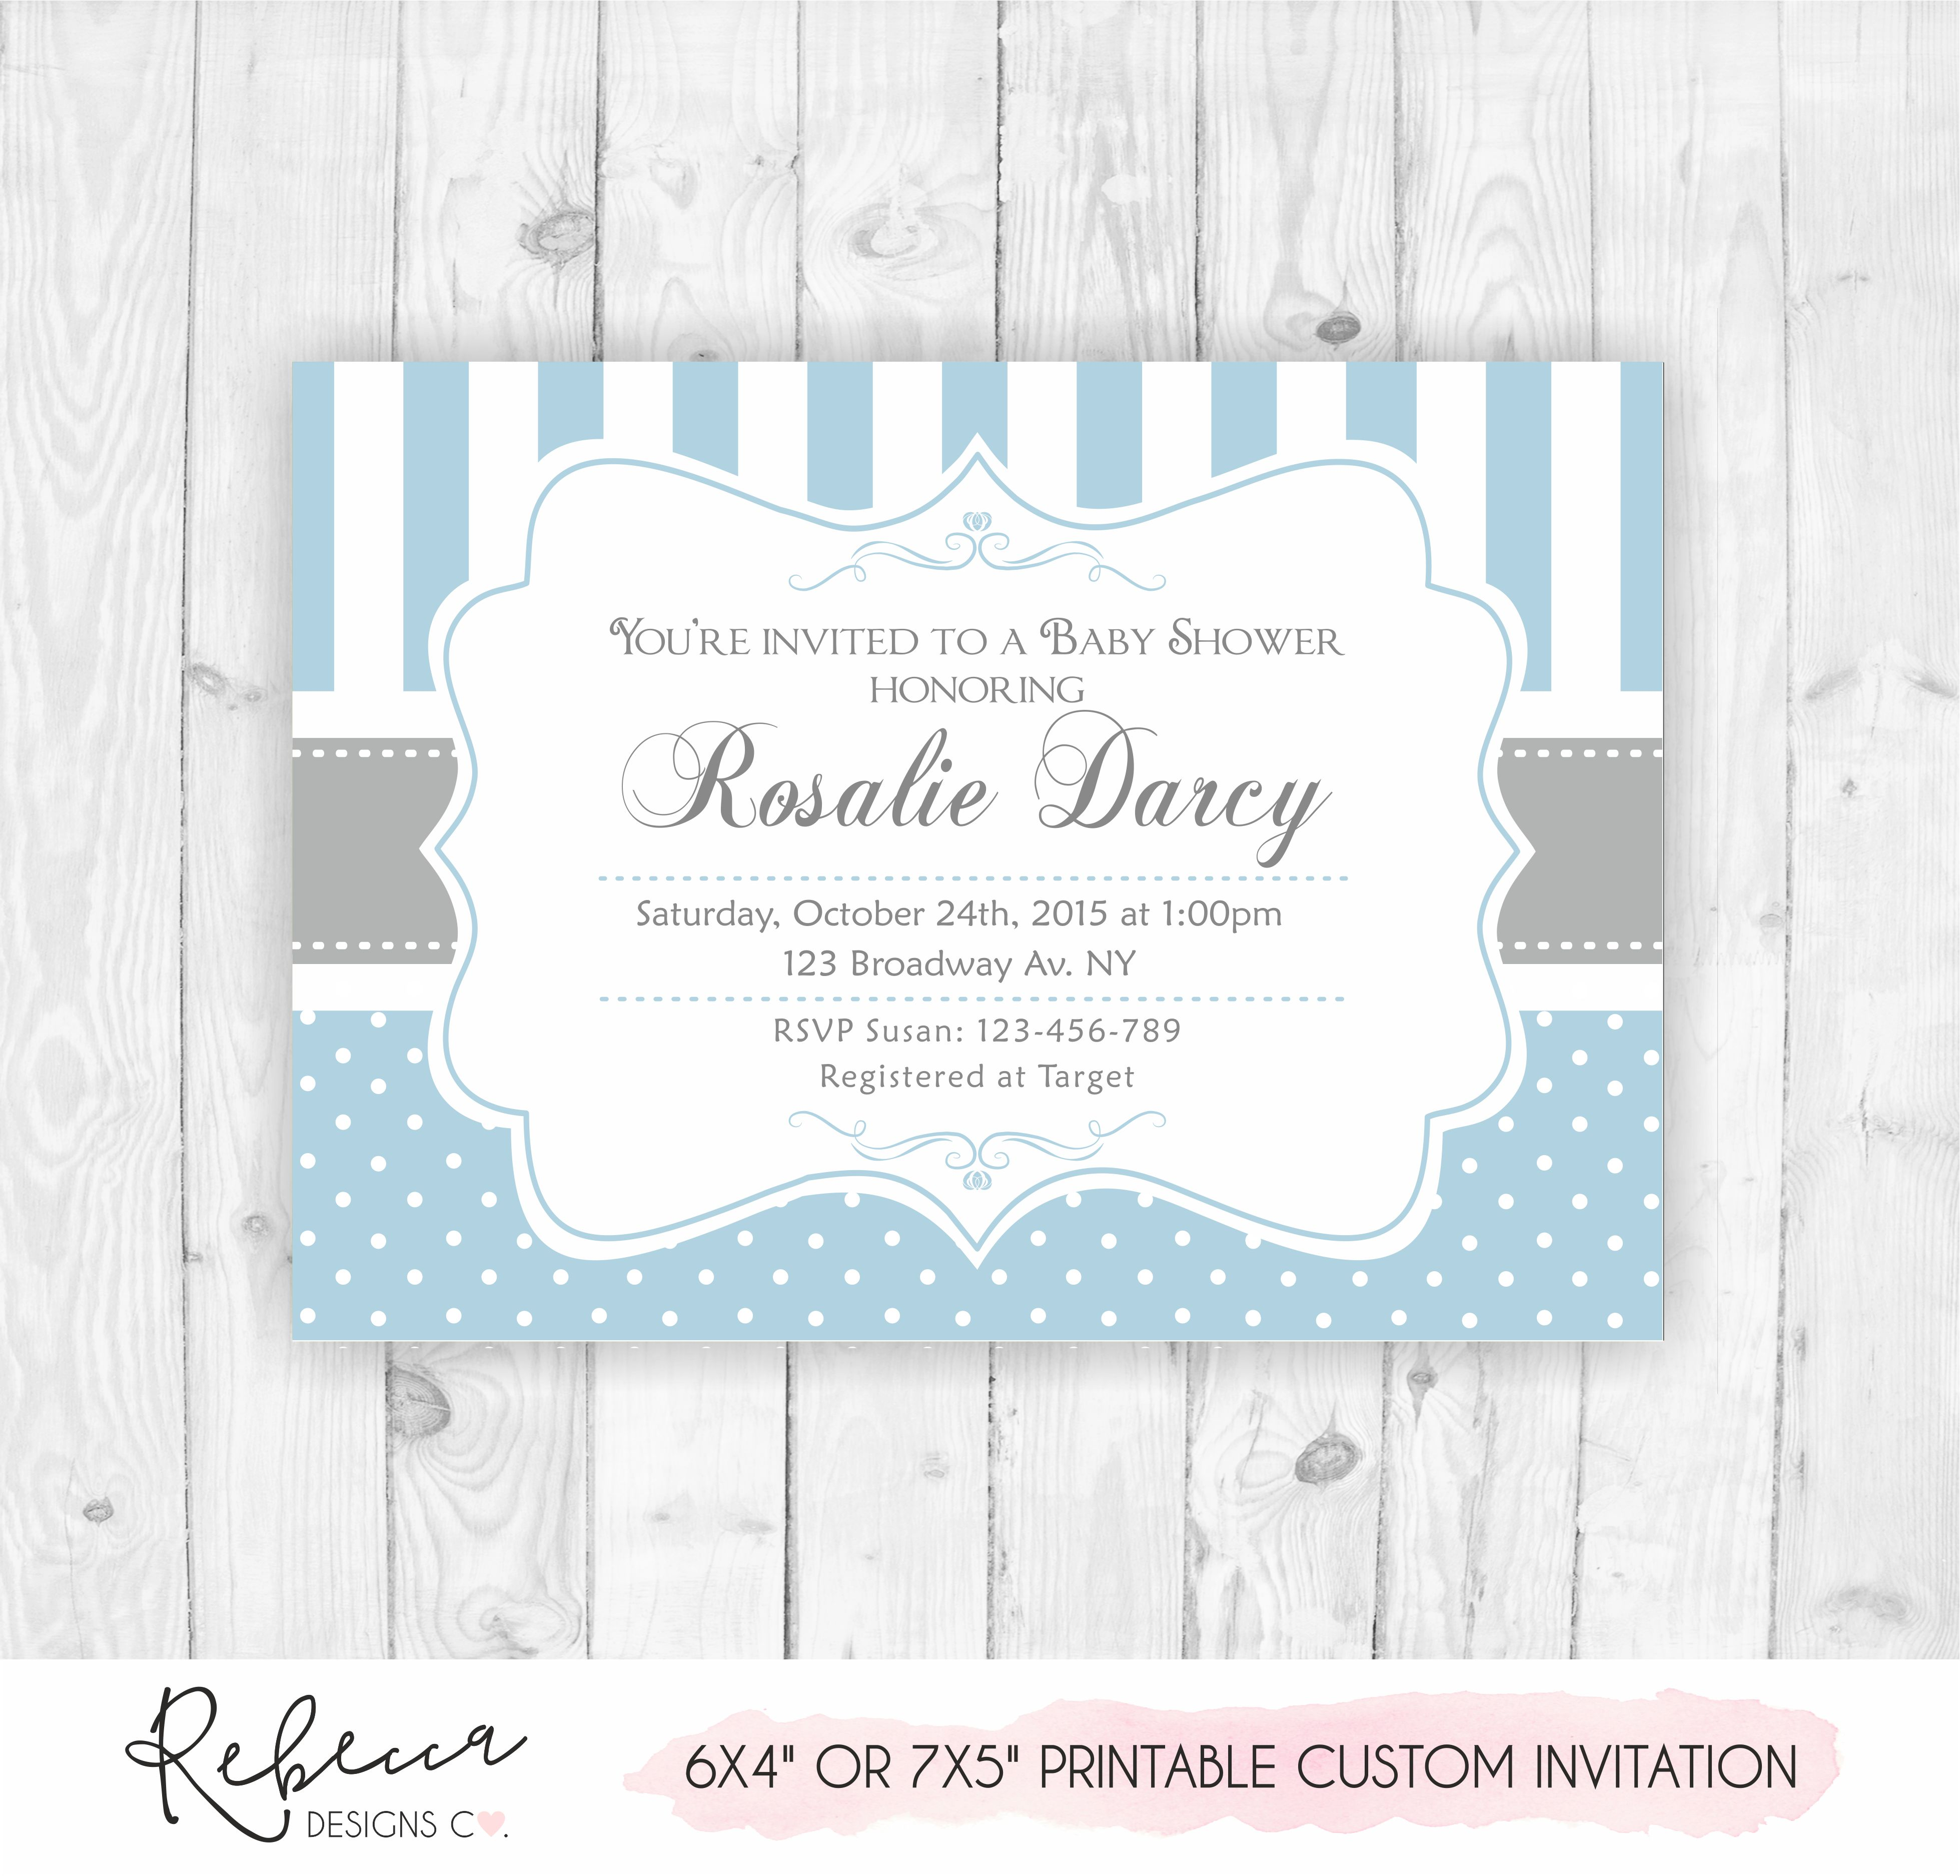 photograph regarding Baby Shower Templates Printable referred to as Boy youngster shower invitation Printable personalized structure